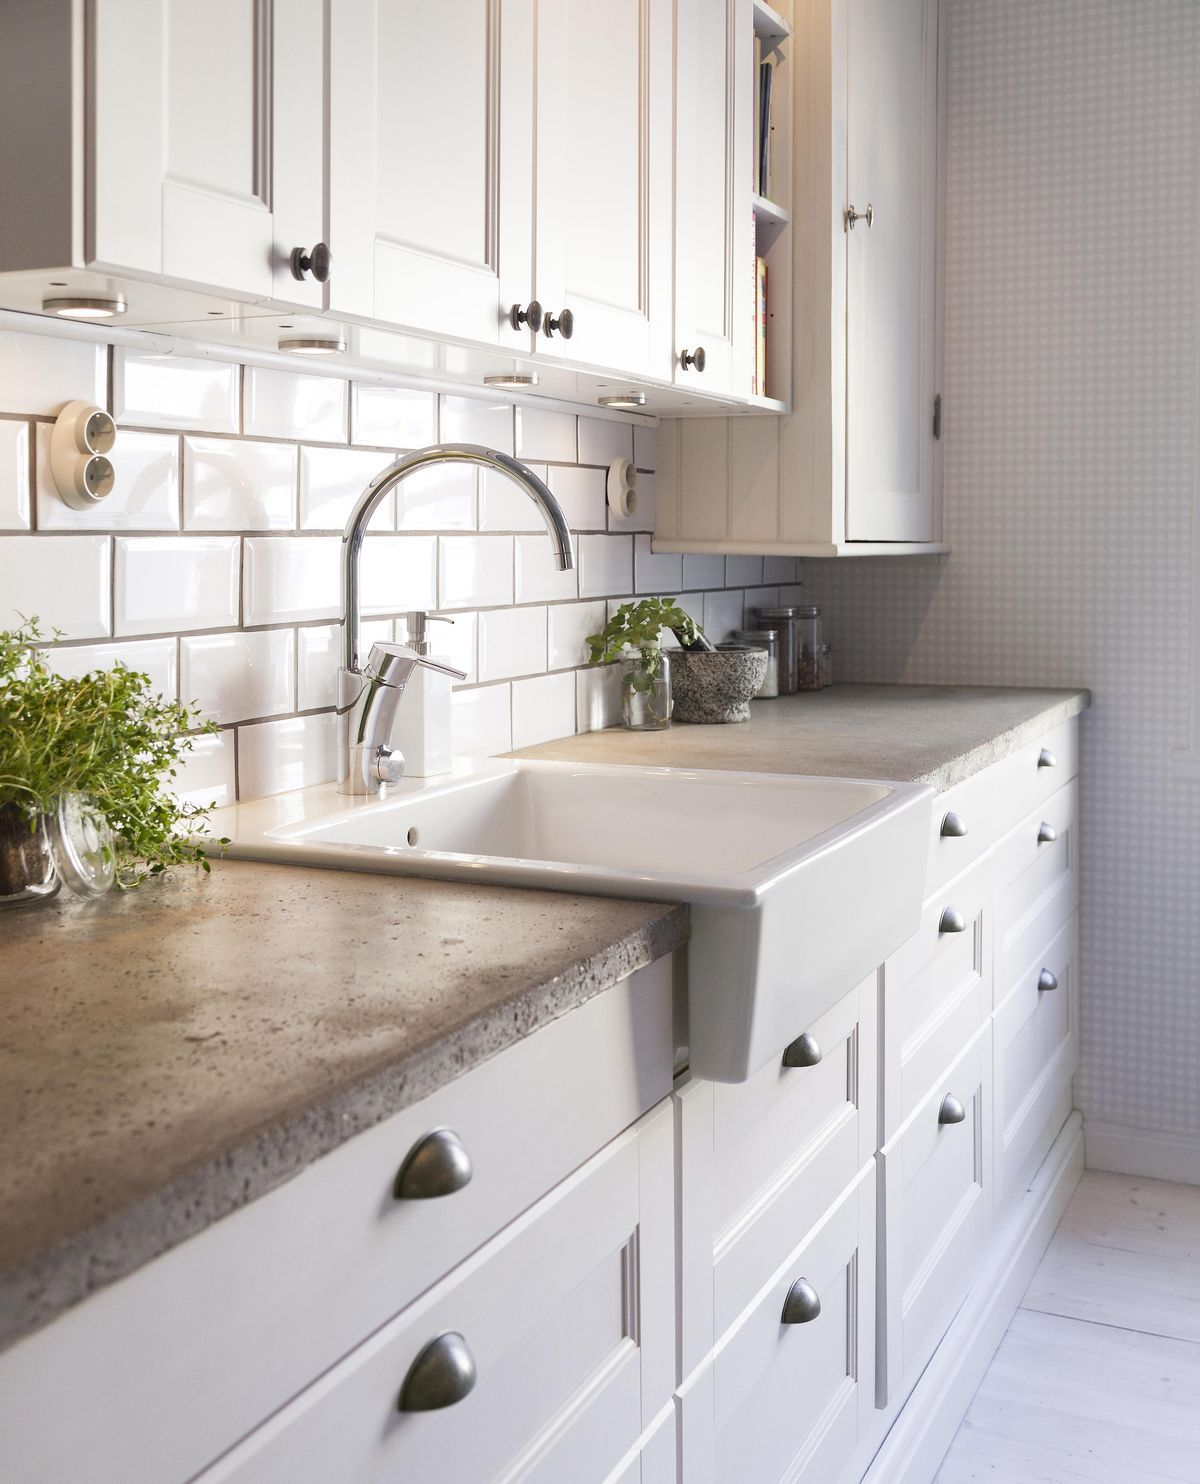 Ed811d830973fd2d5cac6f39776baf76g 12001484 pixels kitchen close to the exact design concrete counter tops farmhouse sink white subway tiles with dark grout backsplash white cabinets for our kitchen doublecrazyfo Choice Image